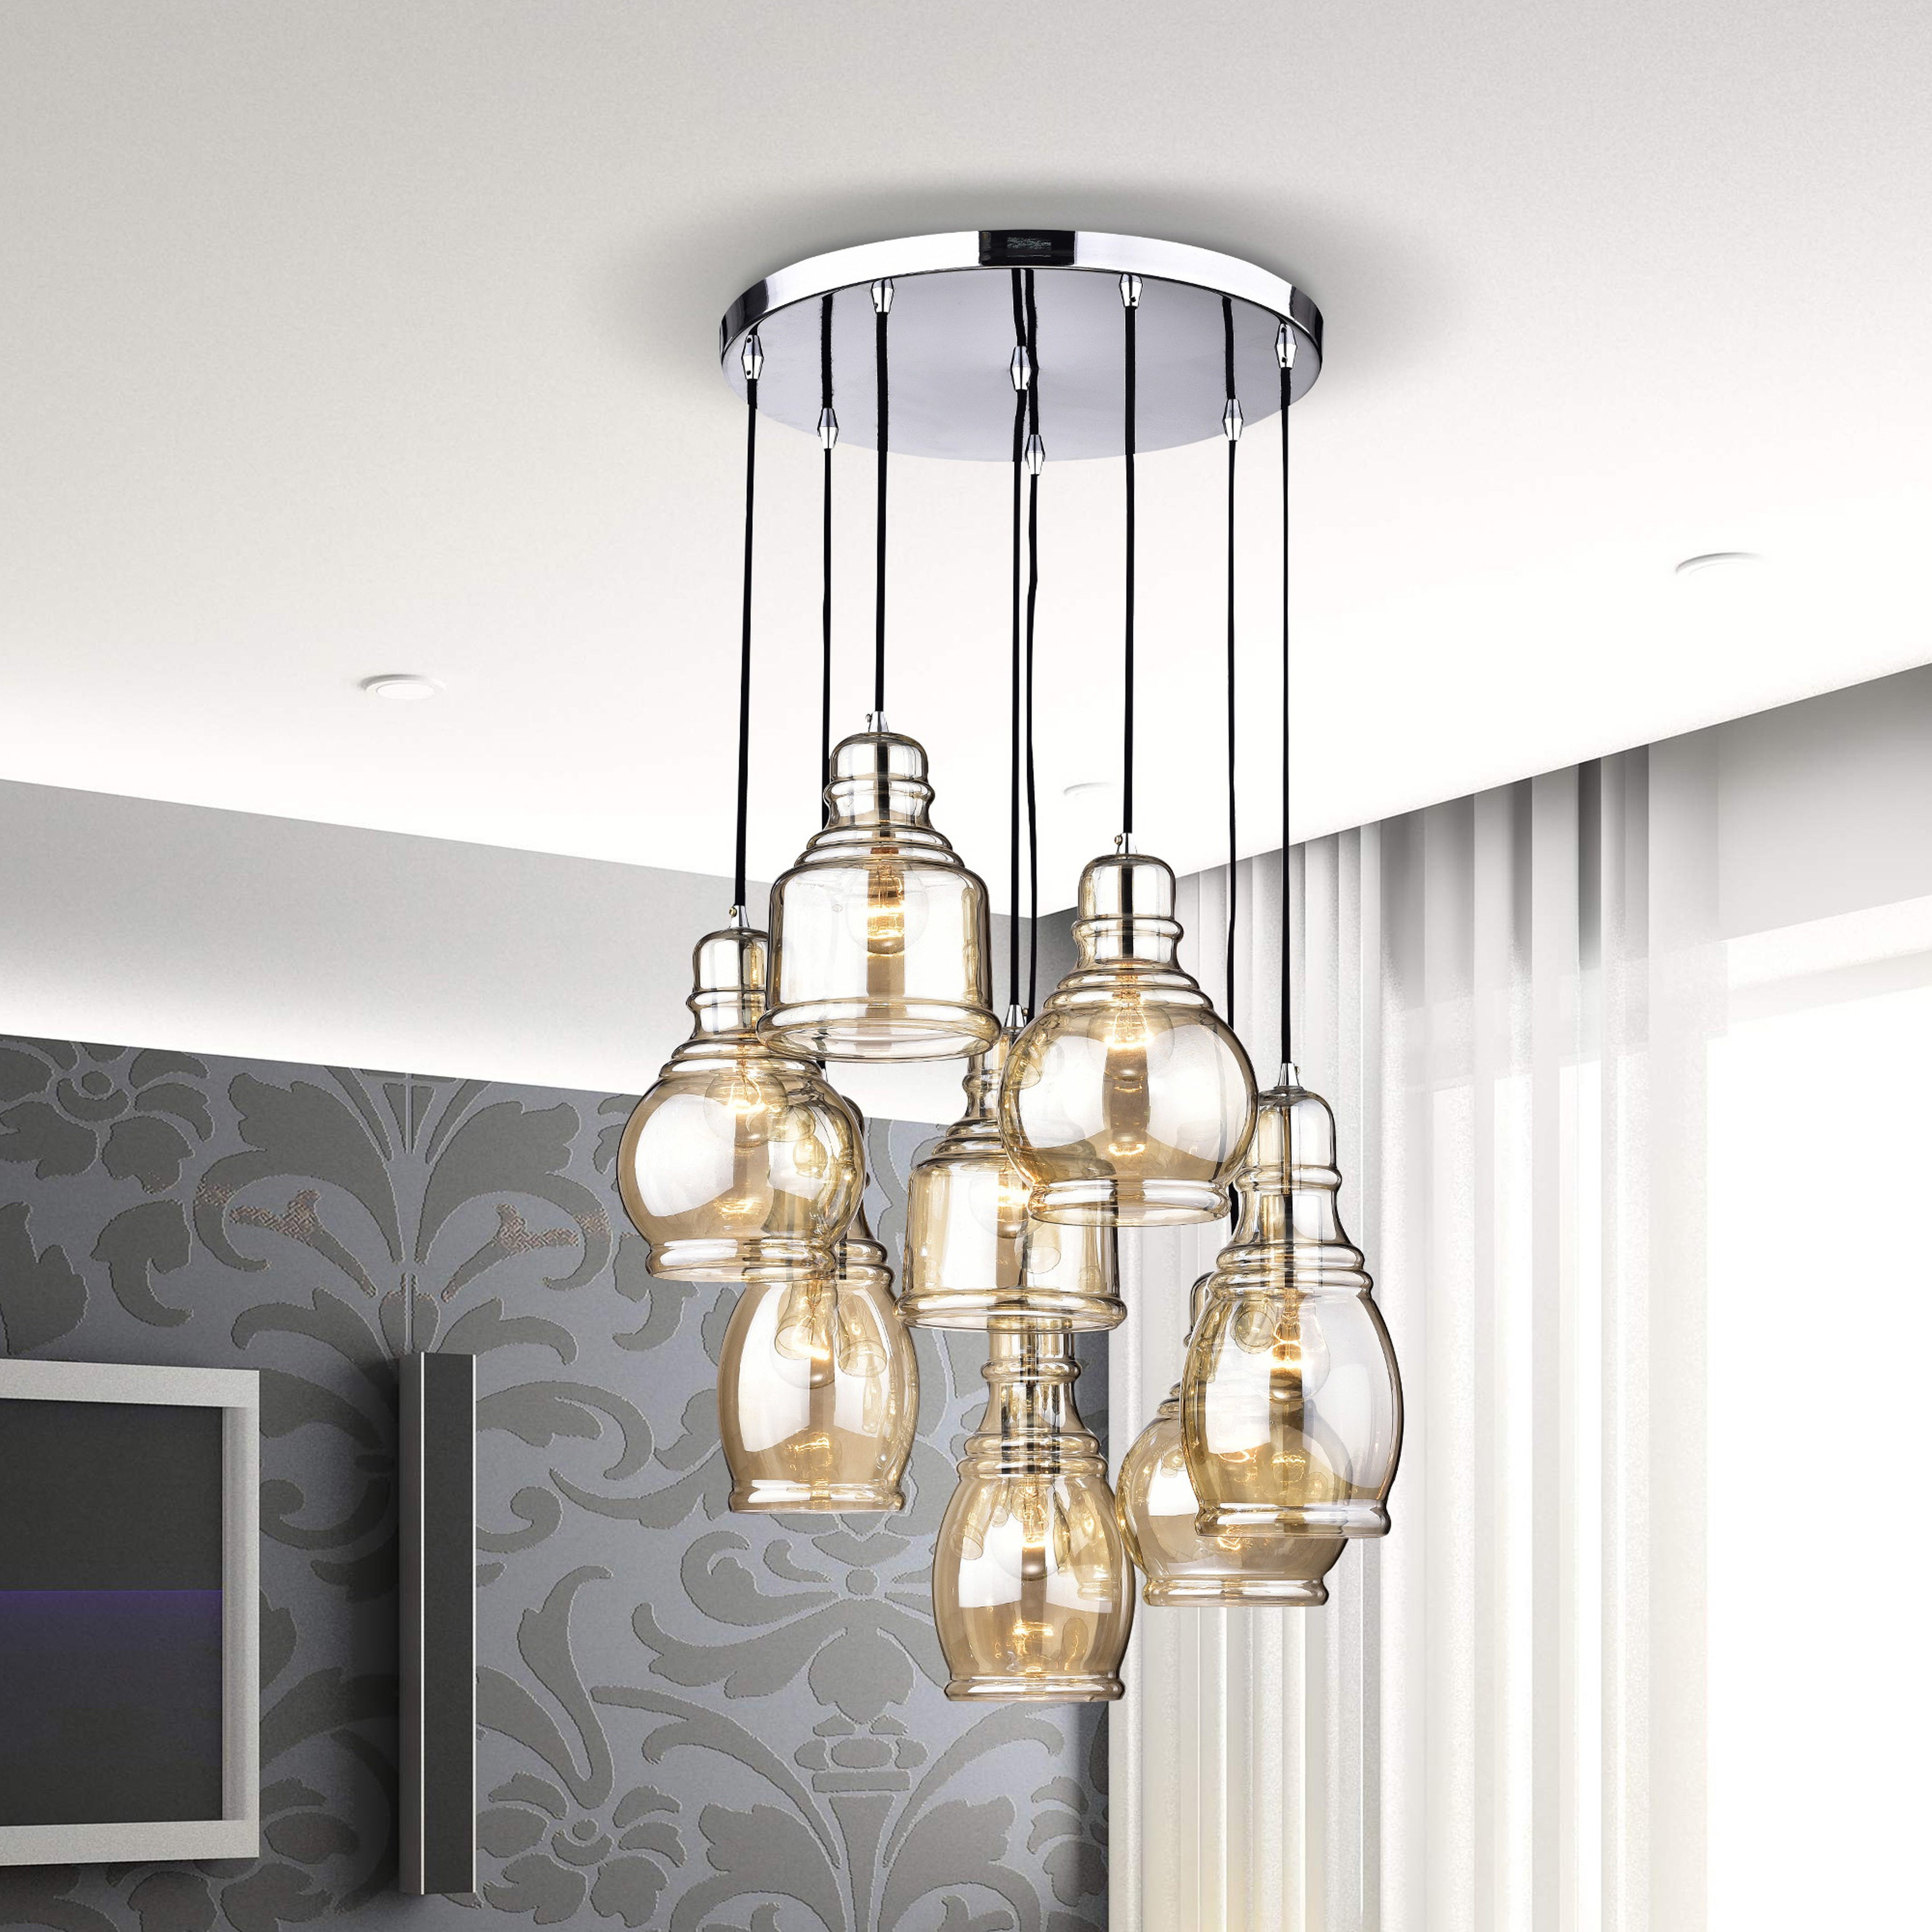 Famous Pruett Cognac Glass 8 Light Cluster Pendants Throughout Mariana 8 Light Cognac Glass Cluster Pendant Chandelier With Chrome Finish  And Round Base (Gallery 9 of 20)